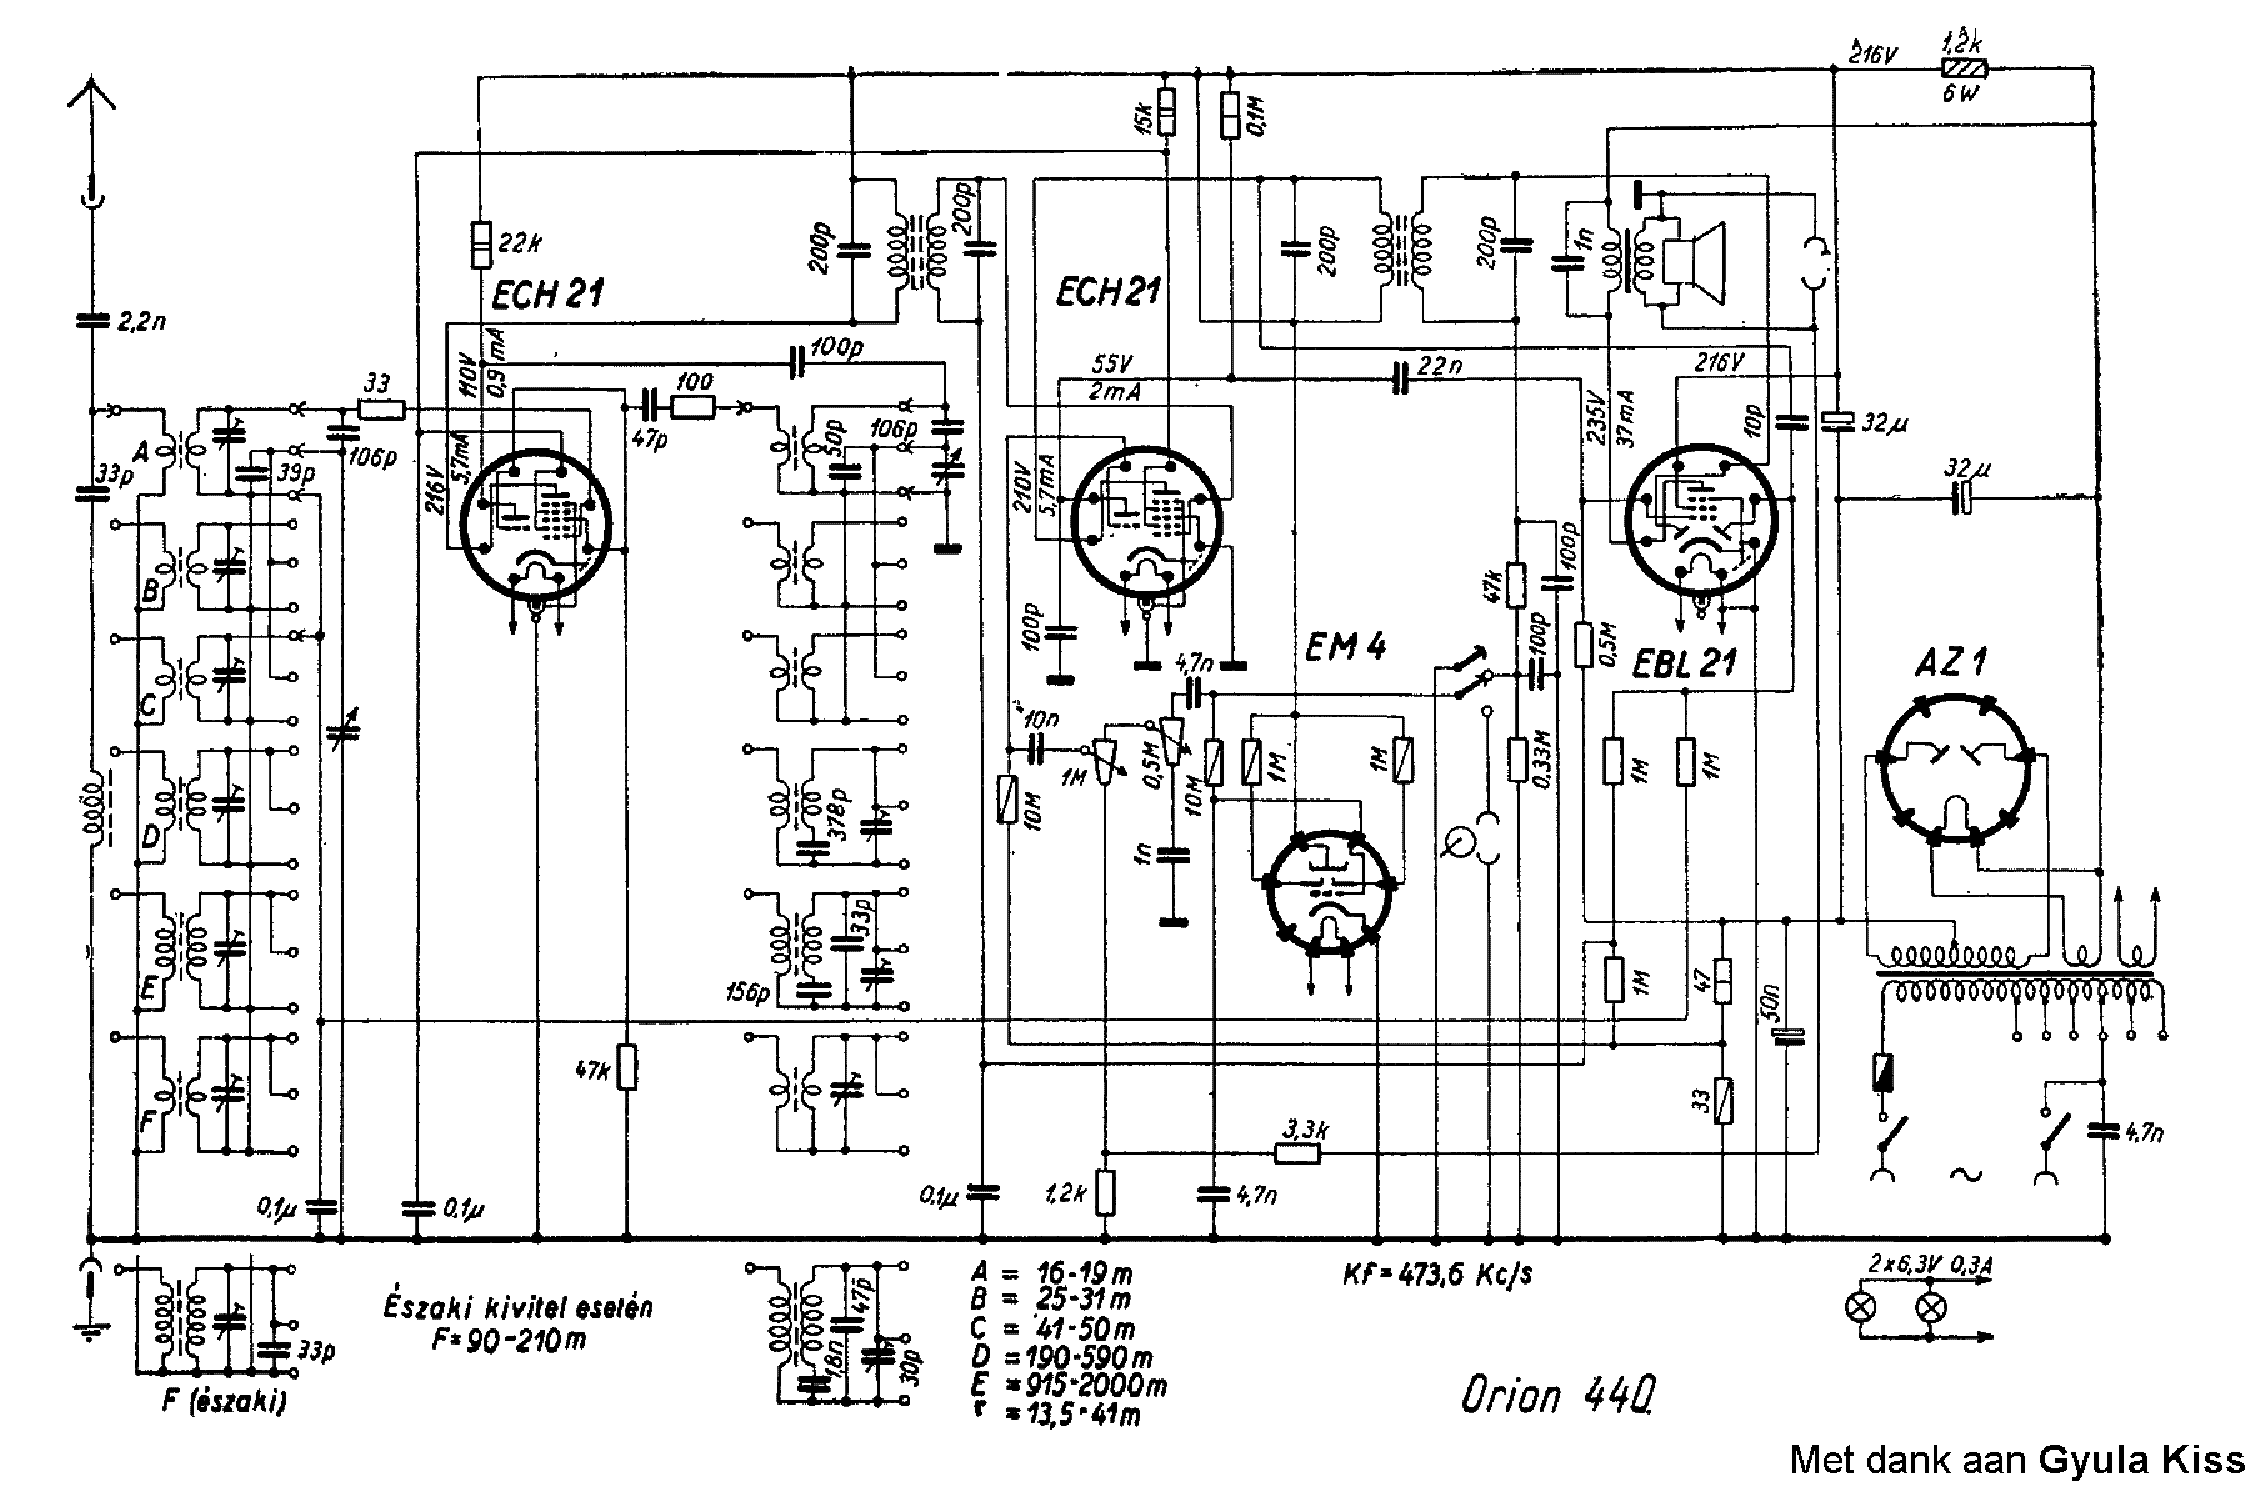 ORION AR306 RADIO SCH Service Manual download, schematics